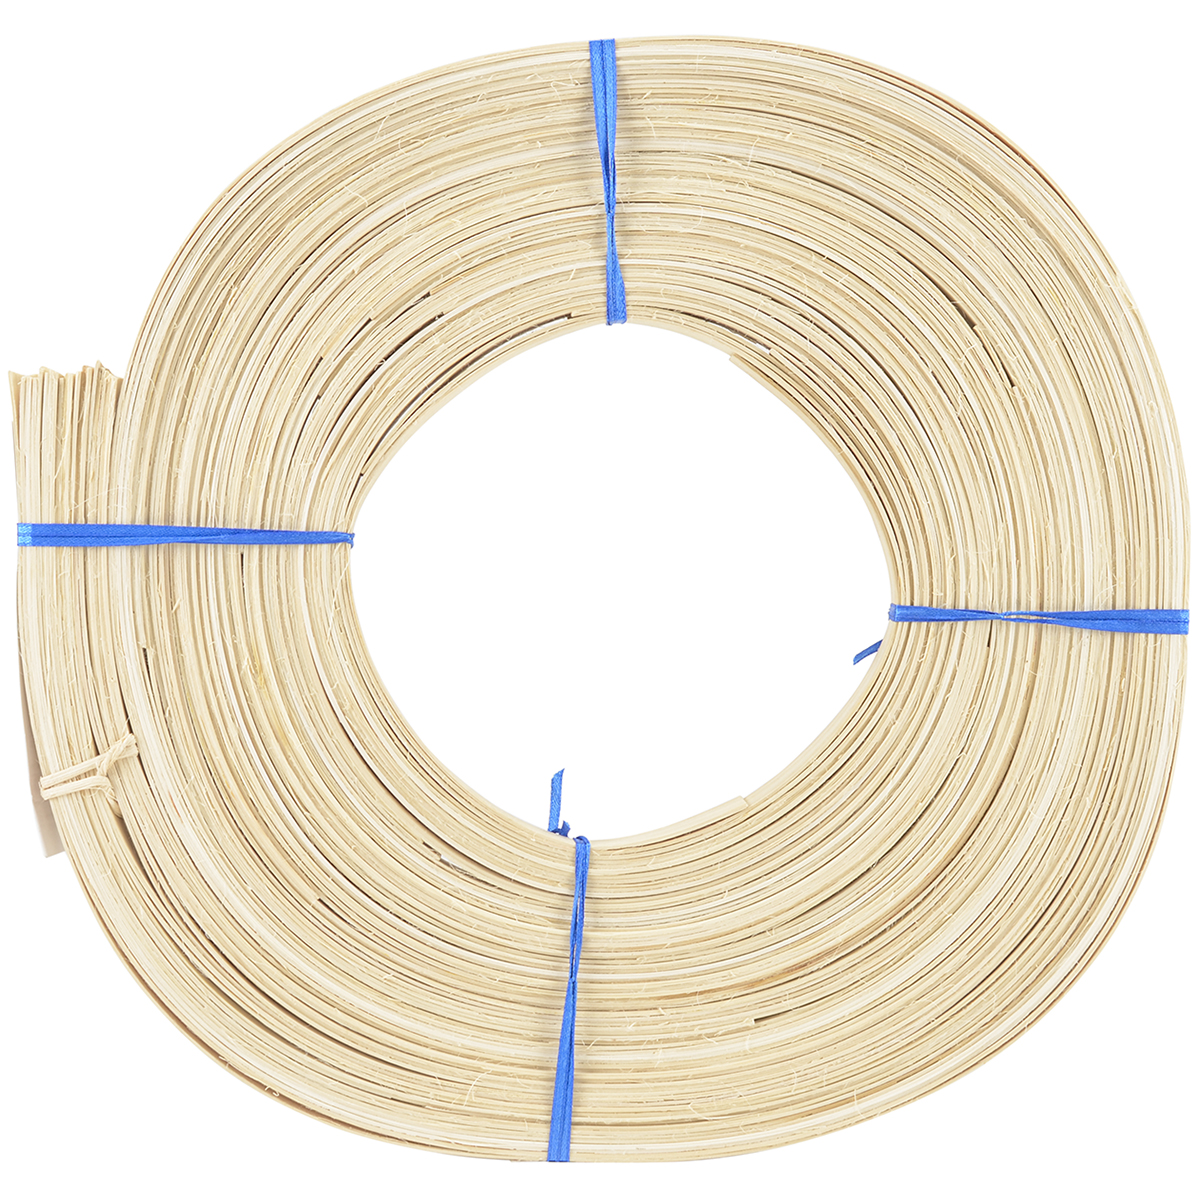 "Flat Reed 5/8"" 1 Pound Coil, Approximately 120'"